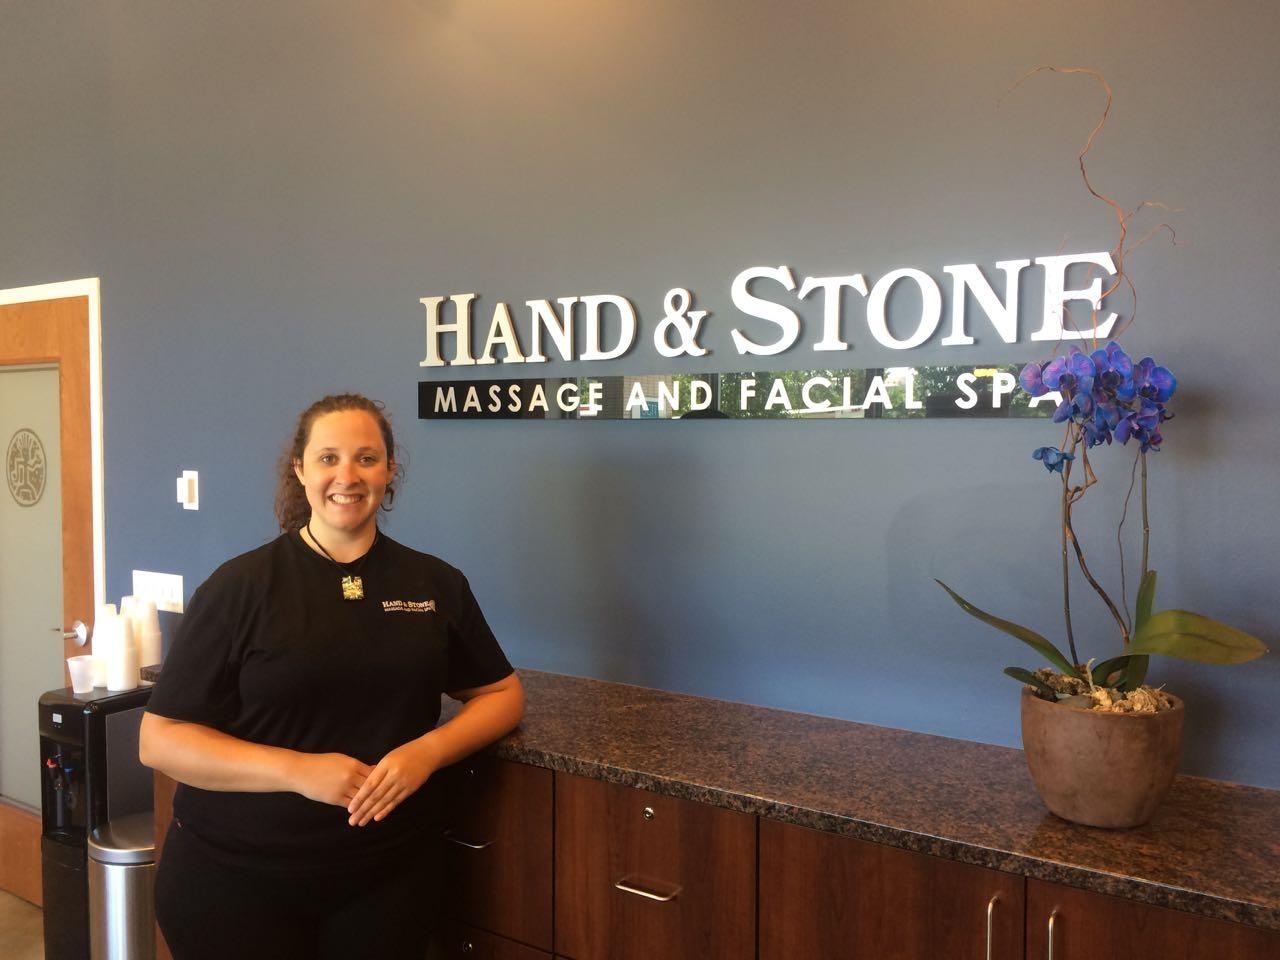 Spend an hour with our incredible therapists!